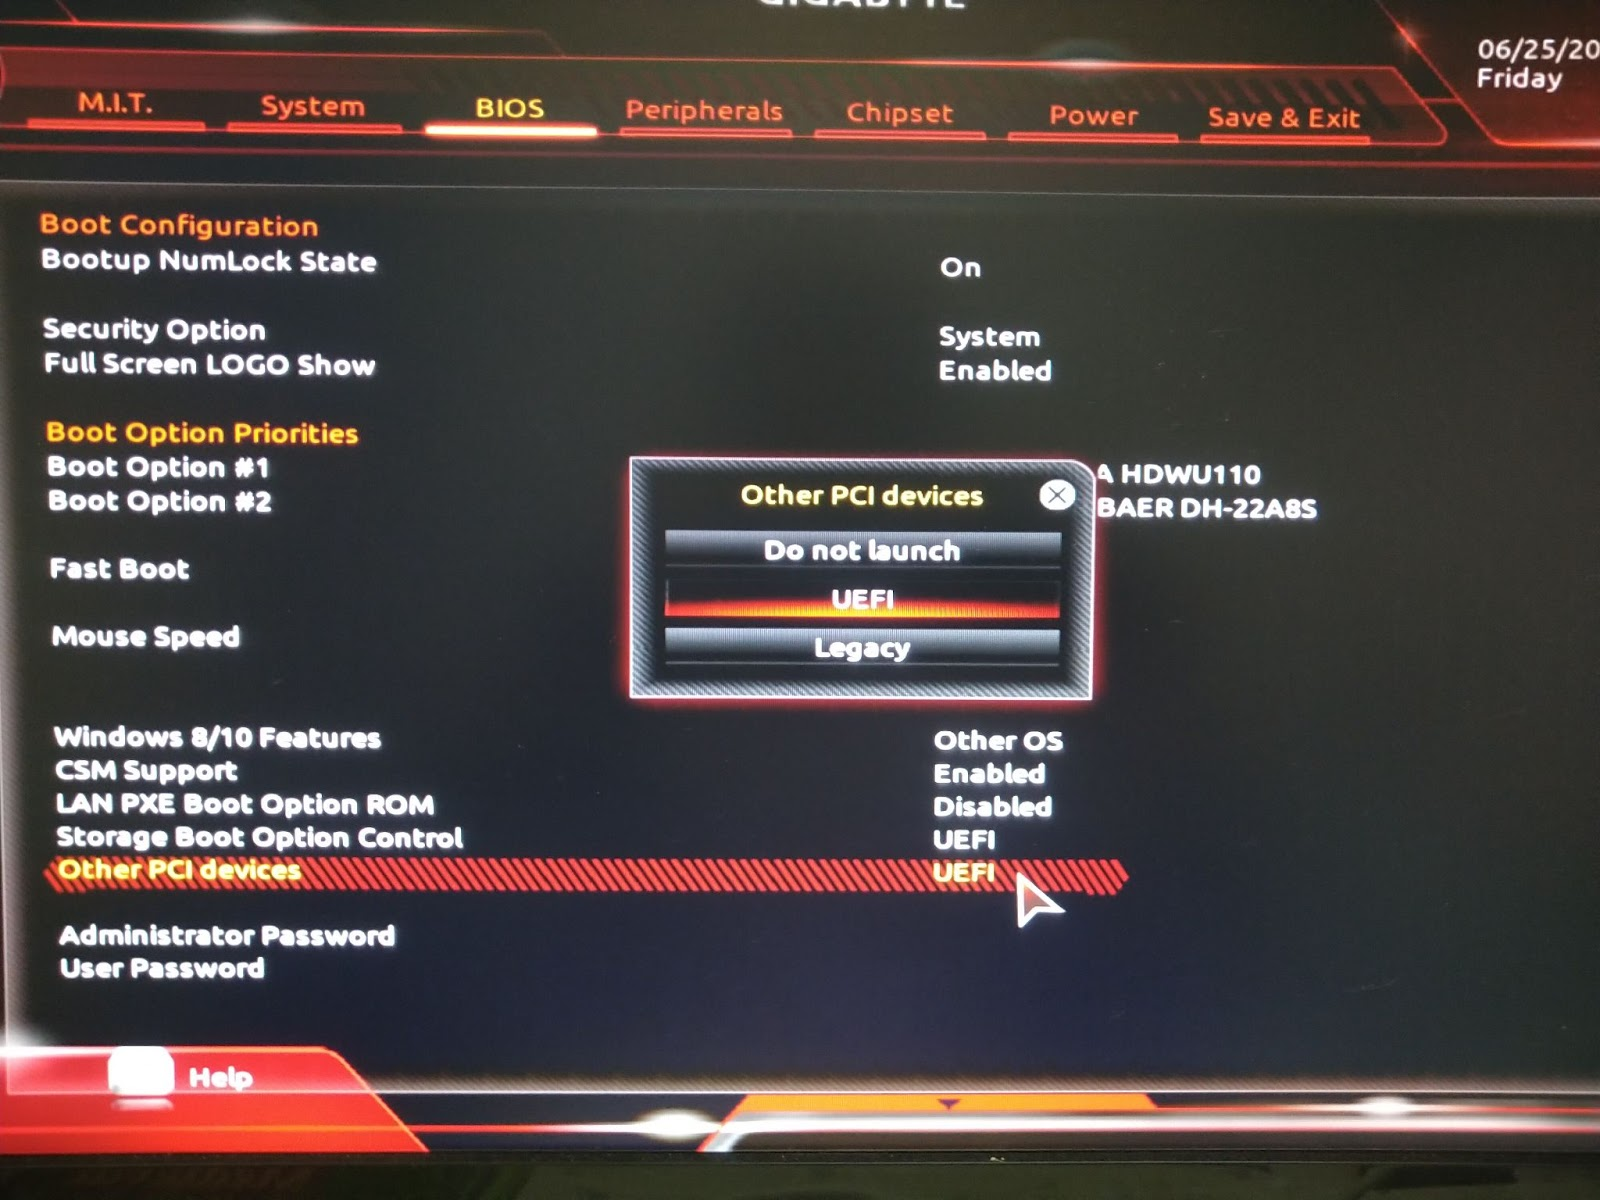 Other Mode in BIOS